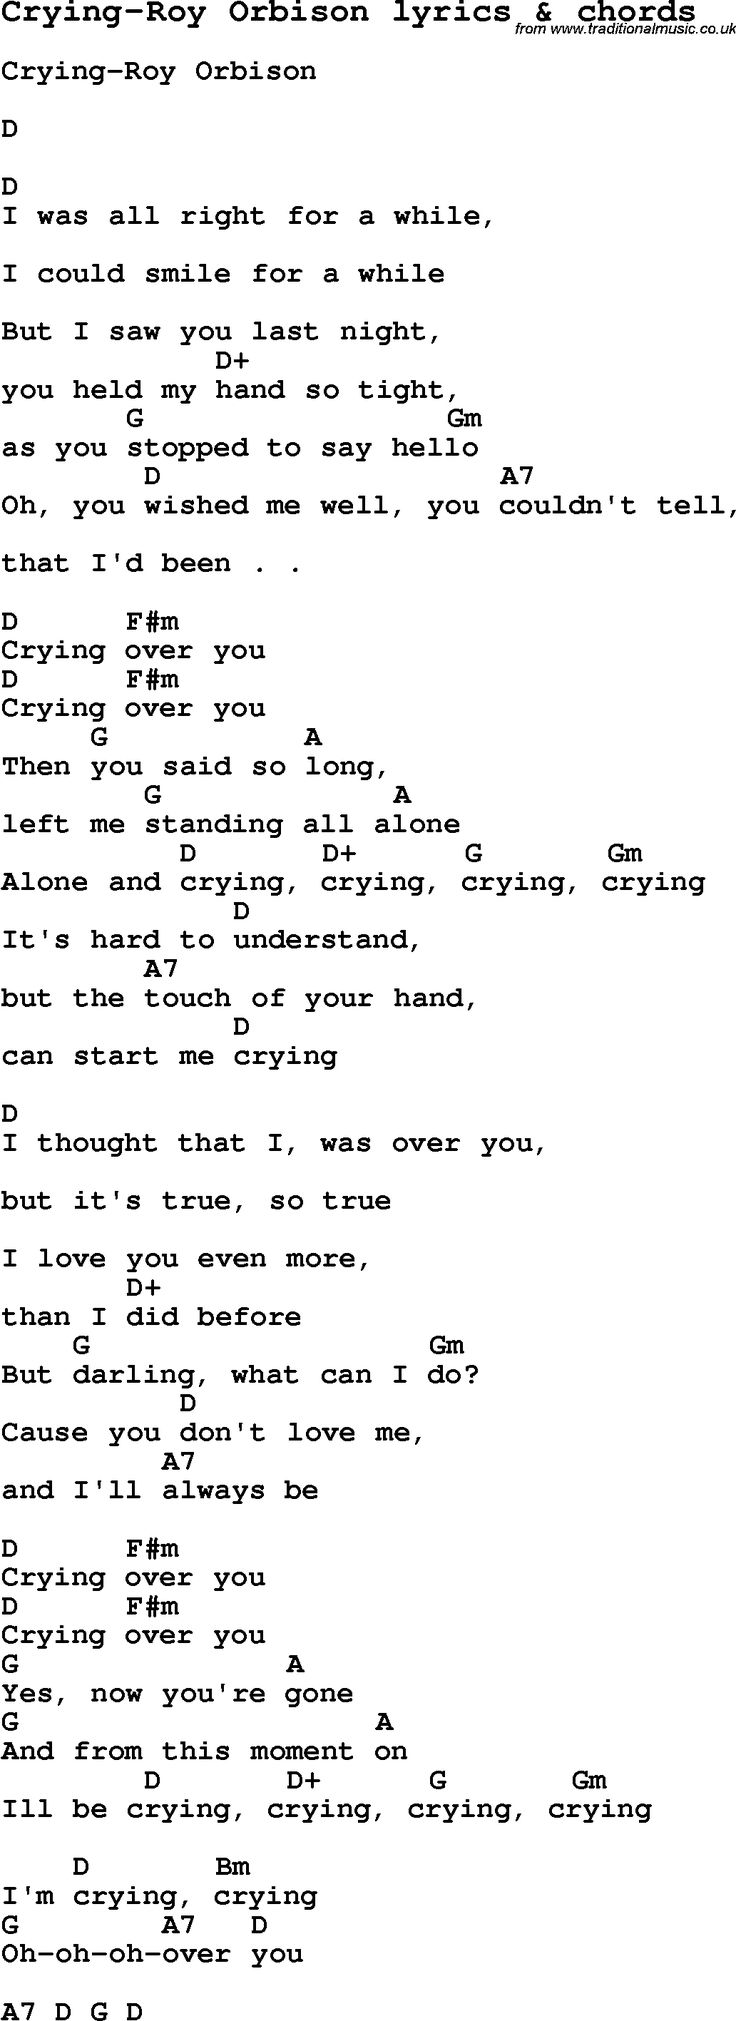 Love Song Lyrics for: Crying-Roy Orbison with chords for Ukulele, Guitar Banjo etc.